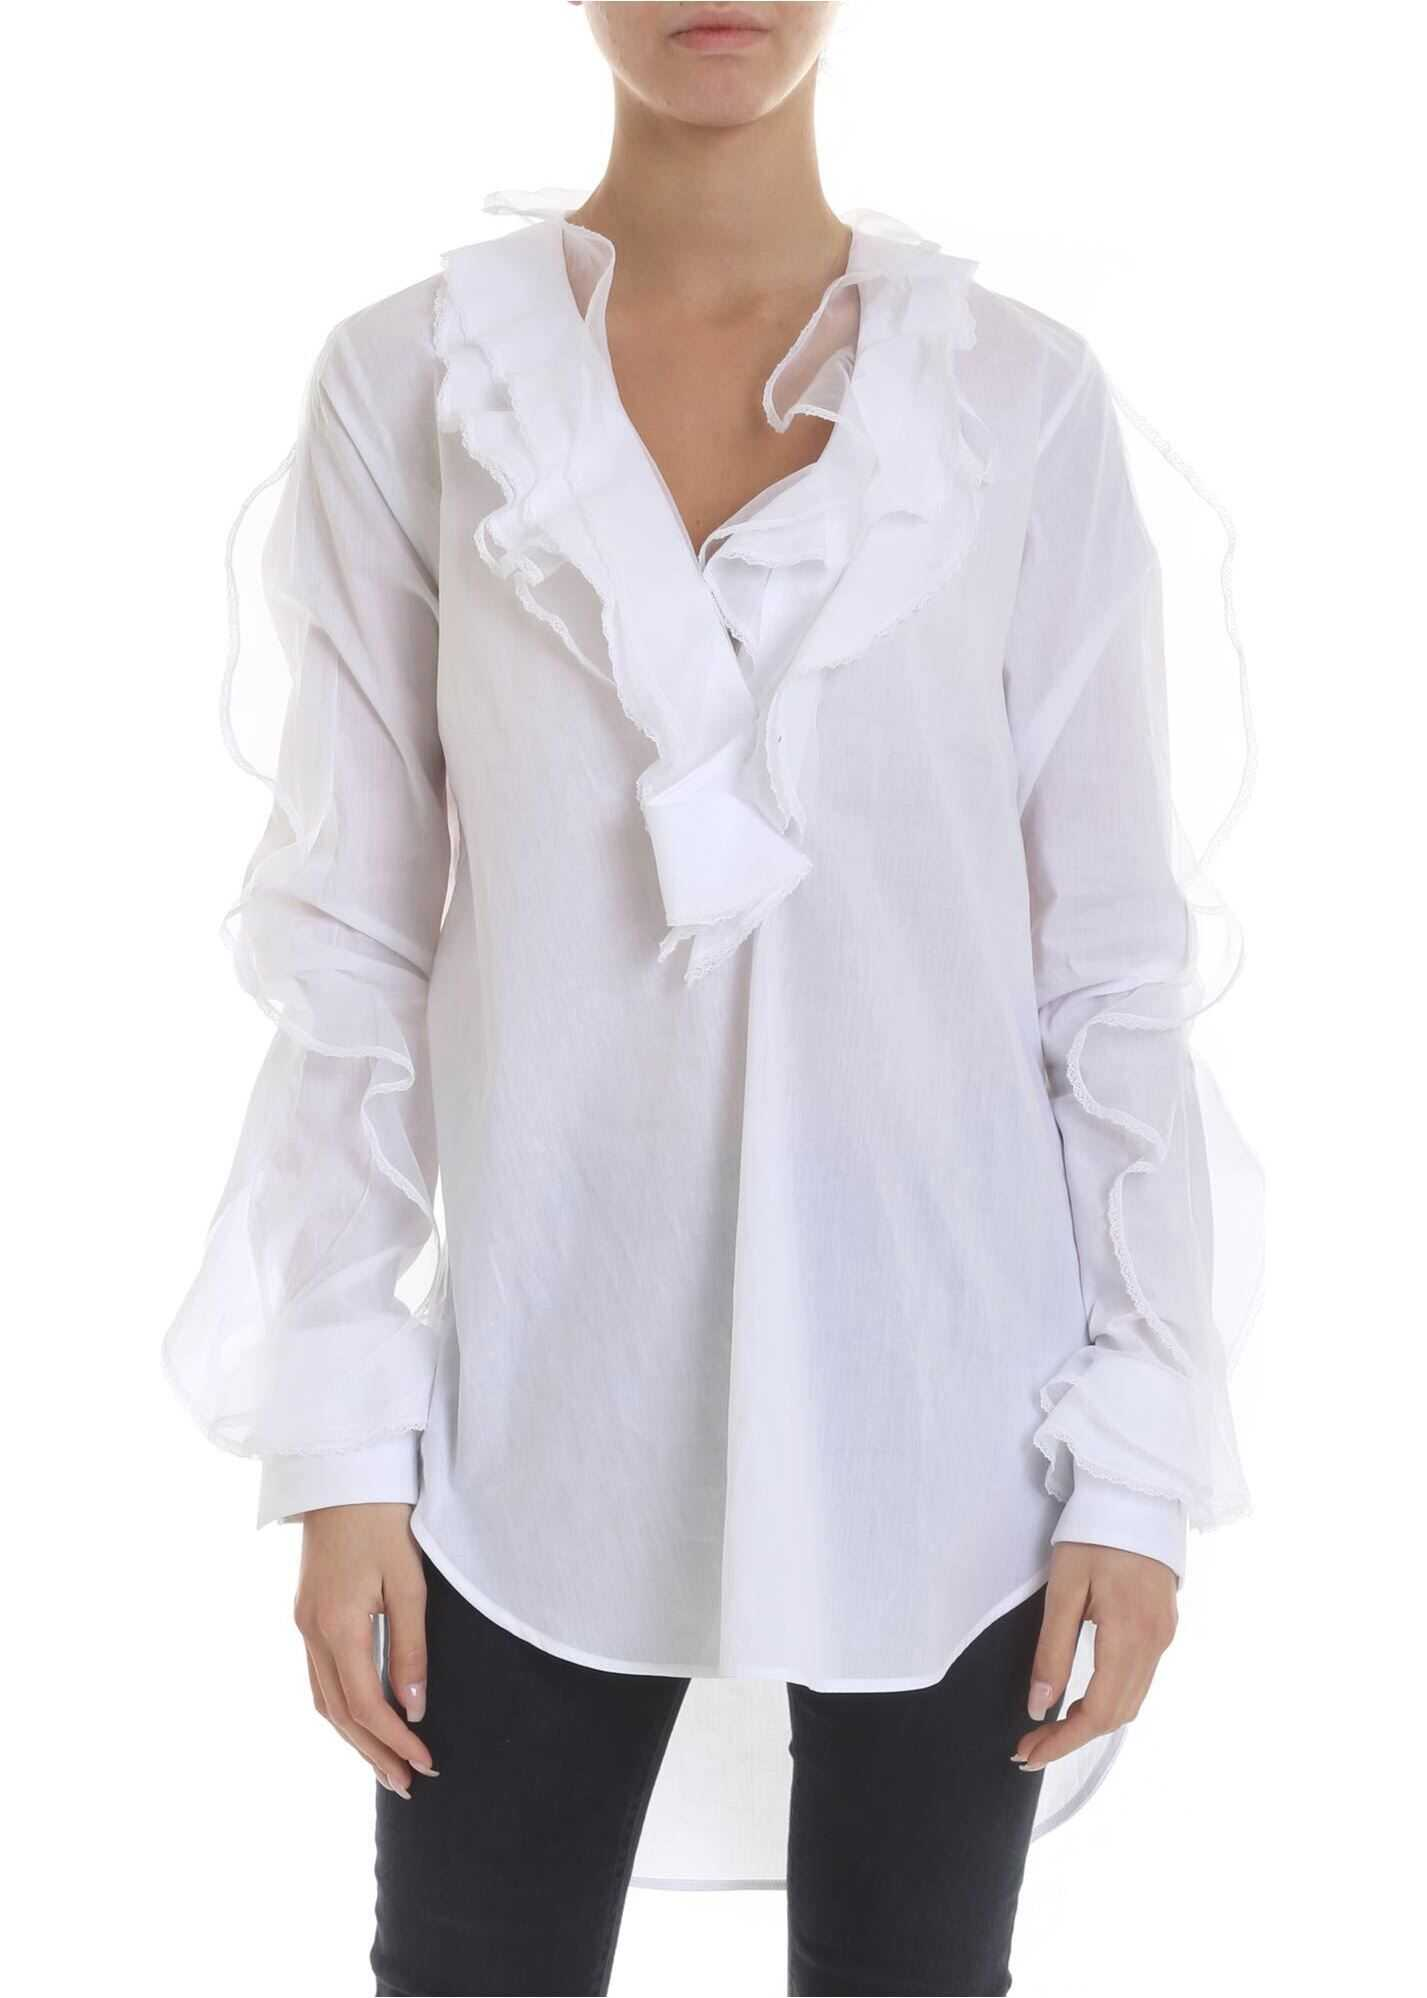 Blouse In White With Ruffles And Lace